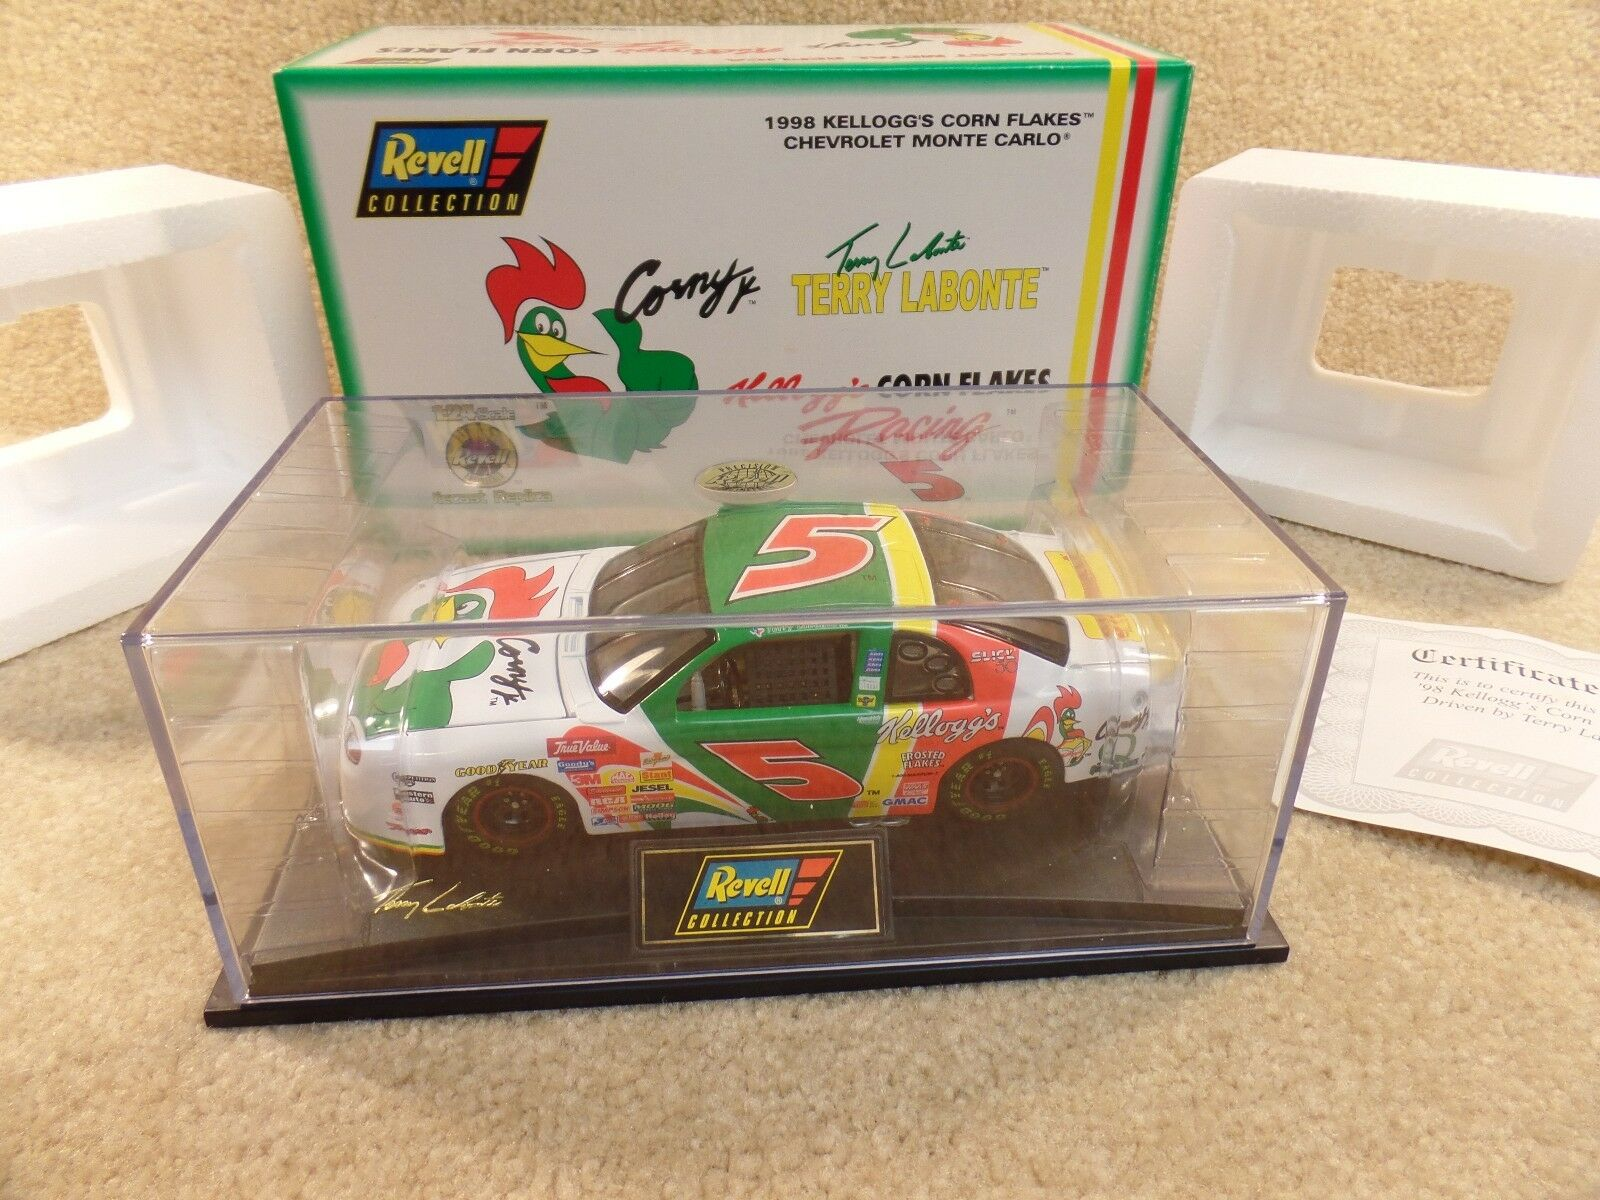 New New New 1998 Revell 1 24 Diecast NASCAR Terry Labonte Corn Flakes Corny Monte Carlo c5a2a3